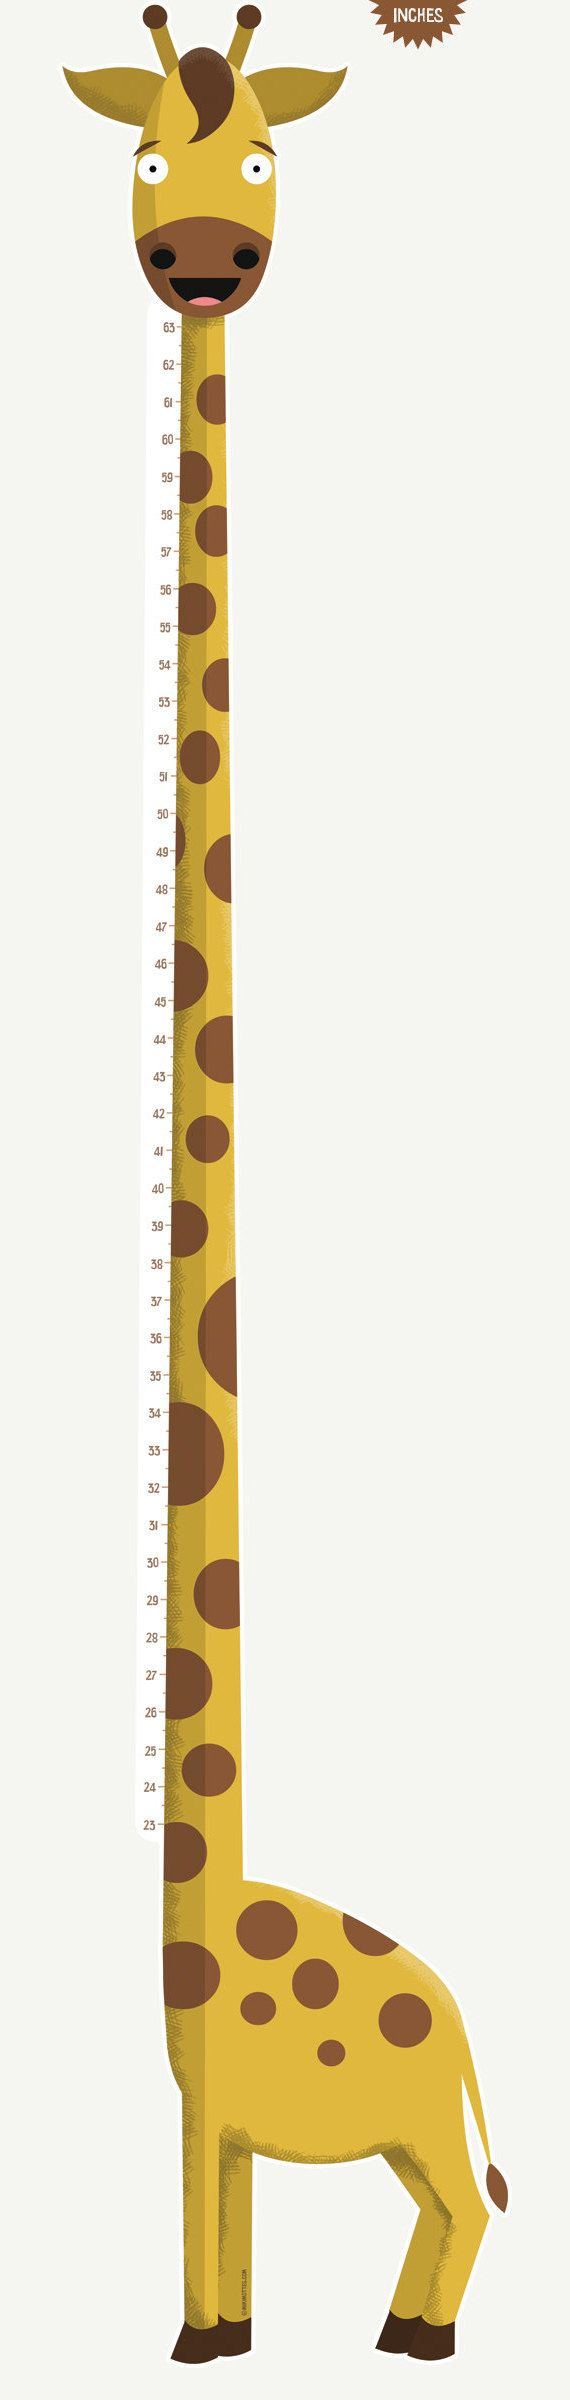 Yellow giraffe growth chart for children 39 s room inch by for Growth chart for kids room